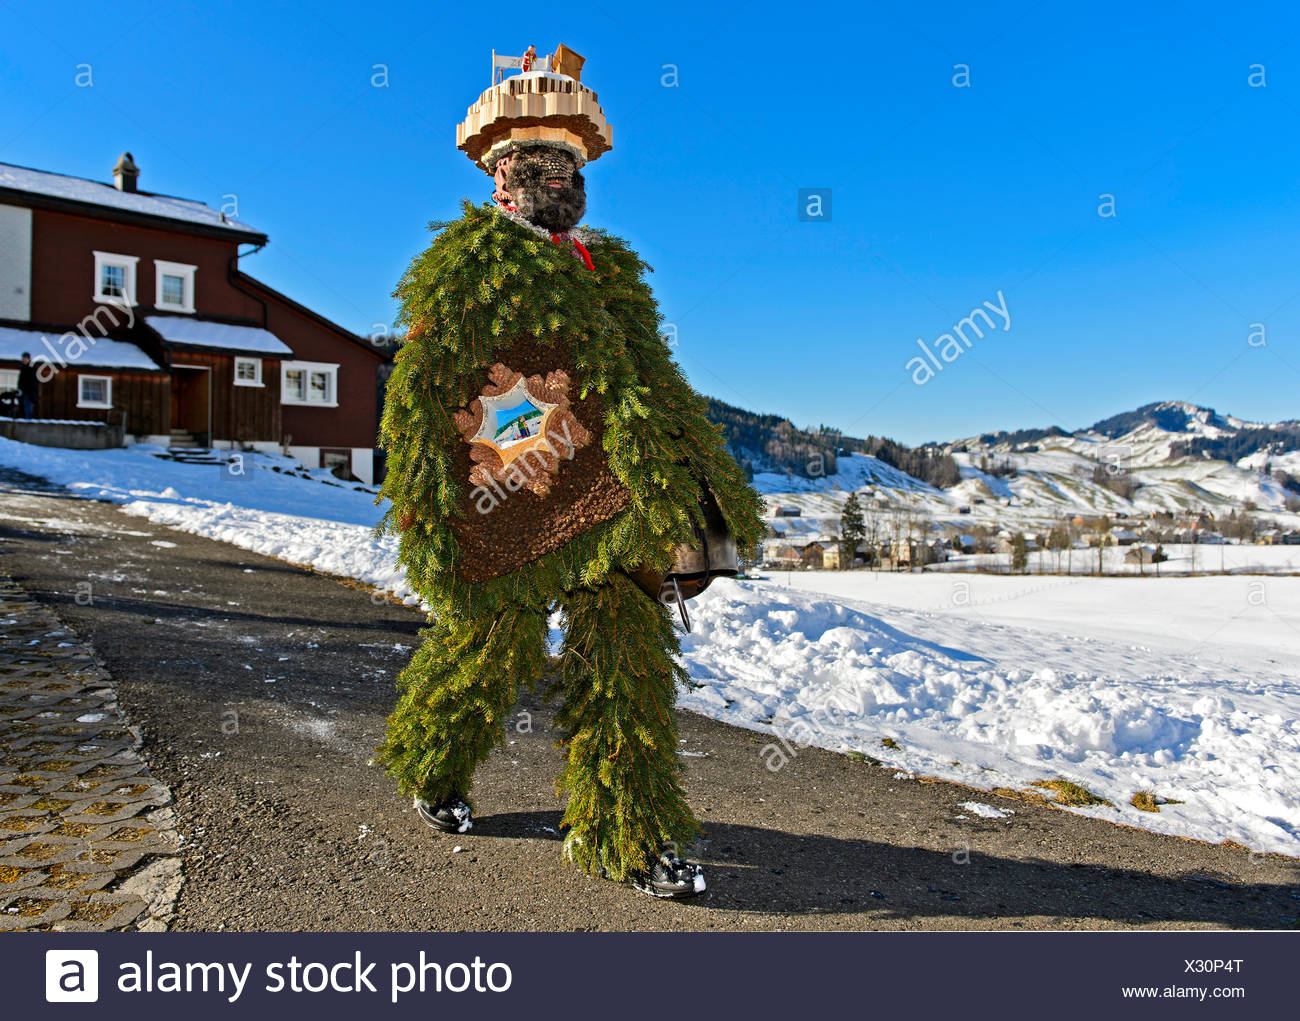 Naturchlaus goes from house to house on New Year's Eve Urnäsch, Canton Appenzell Ausserrhoden, Switzerland - Stock Image